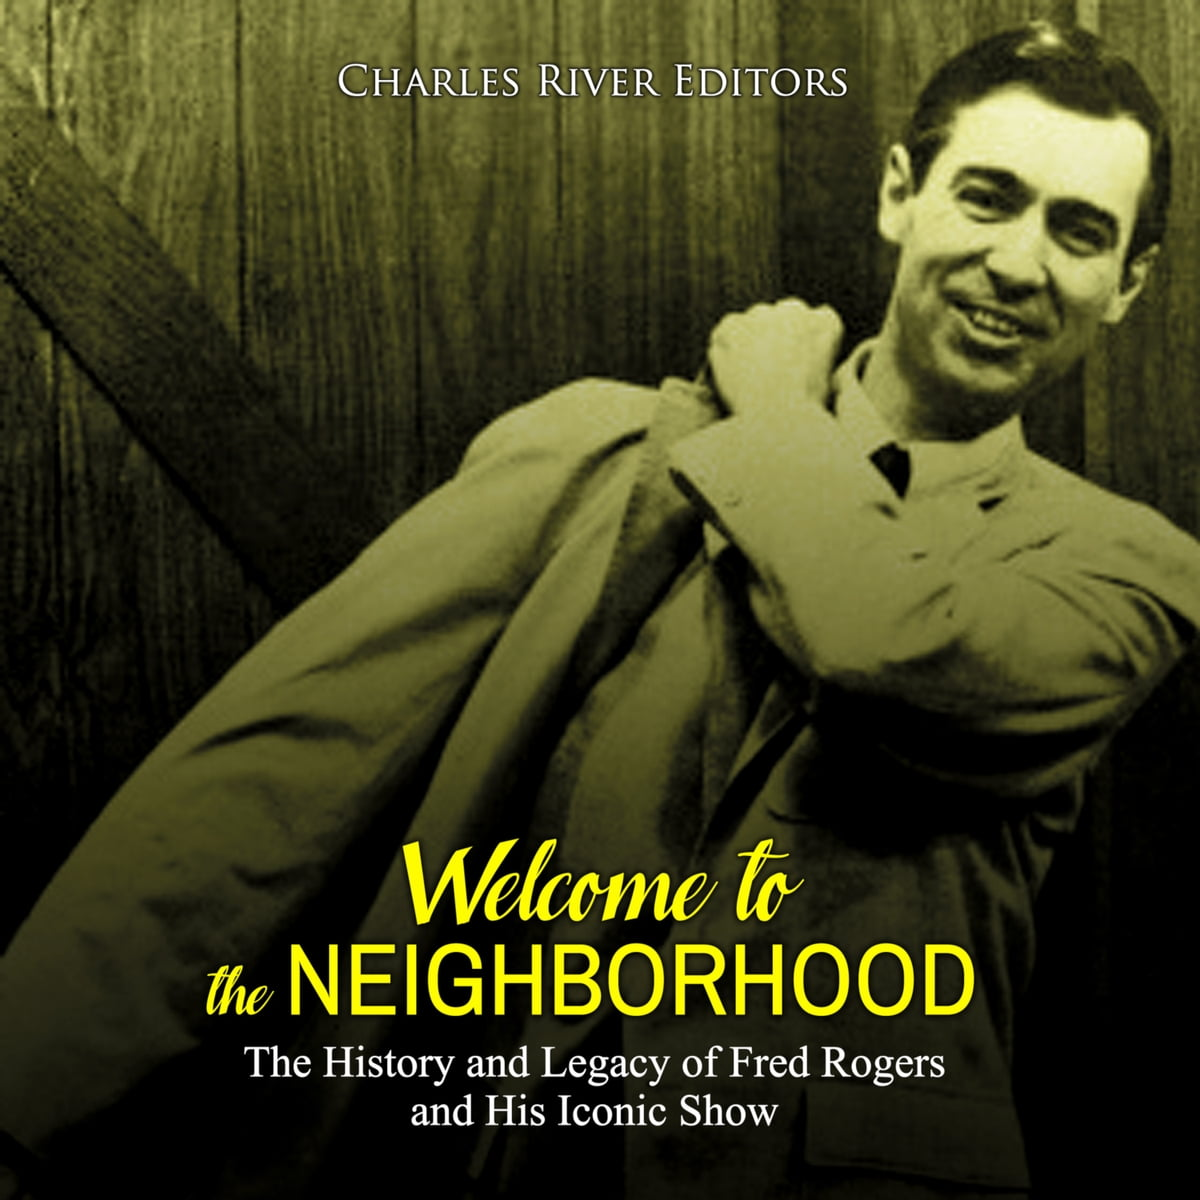 Welcome To The Neighborhood The History And Legacy Of Fred Rogers And His Iconic Show Audiobook By Charles River Editors 9781987172164 Rakuten Kobo United States